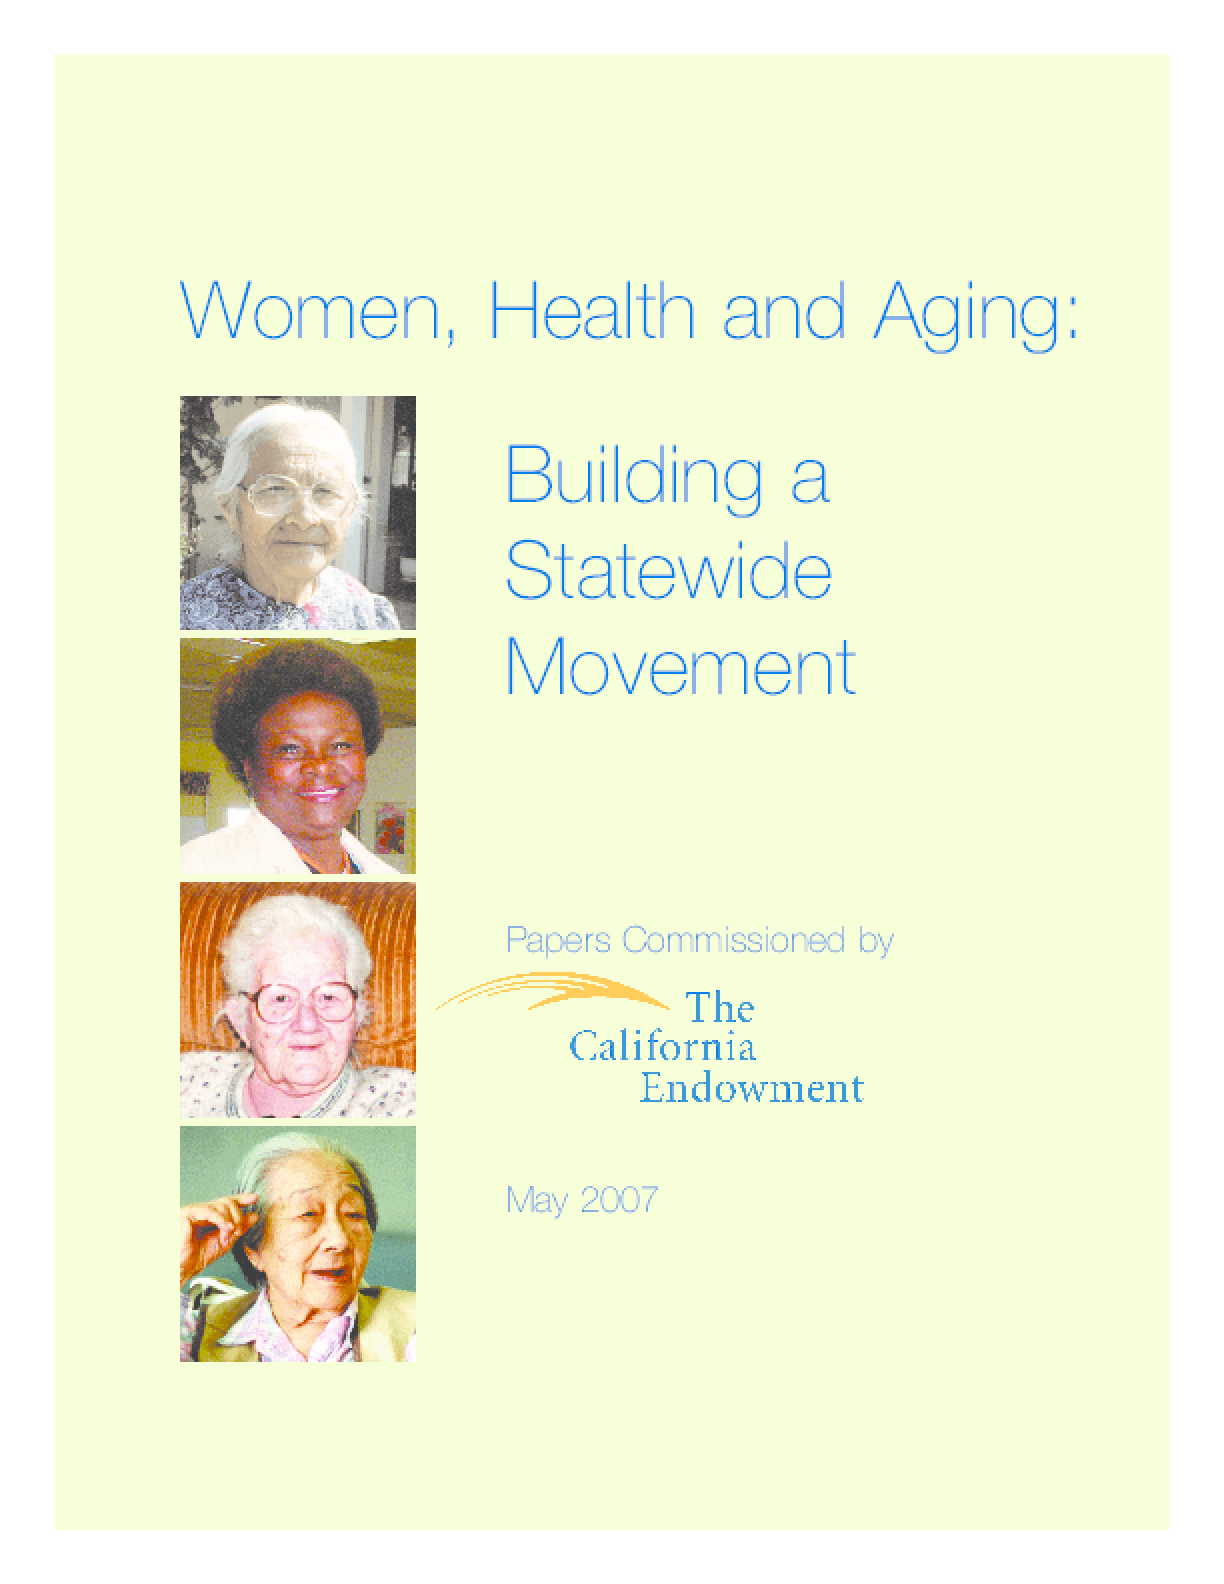 Women, Health and Aging: Building a Statewide Movement